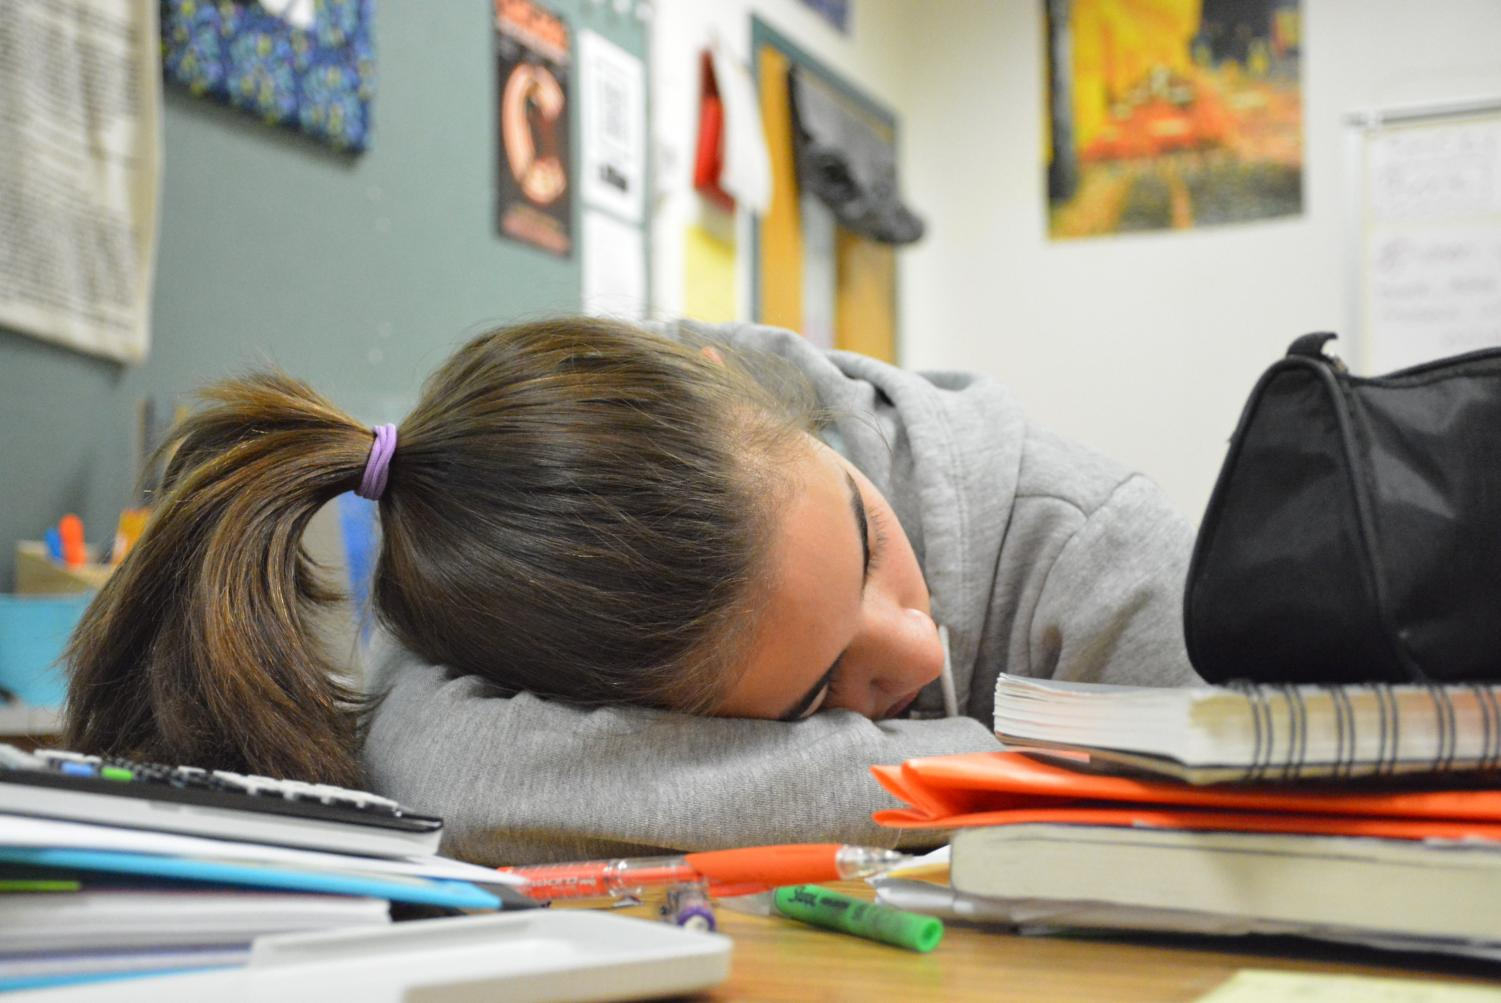 This photo depicts a student sleeping in school in order to highlight the everyday reality for many students who spend countless hours each night doing homework, leaving little time for much needed sleep.